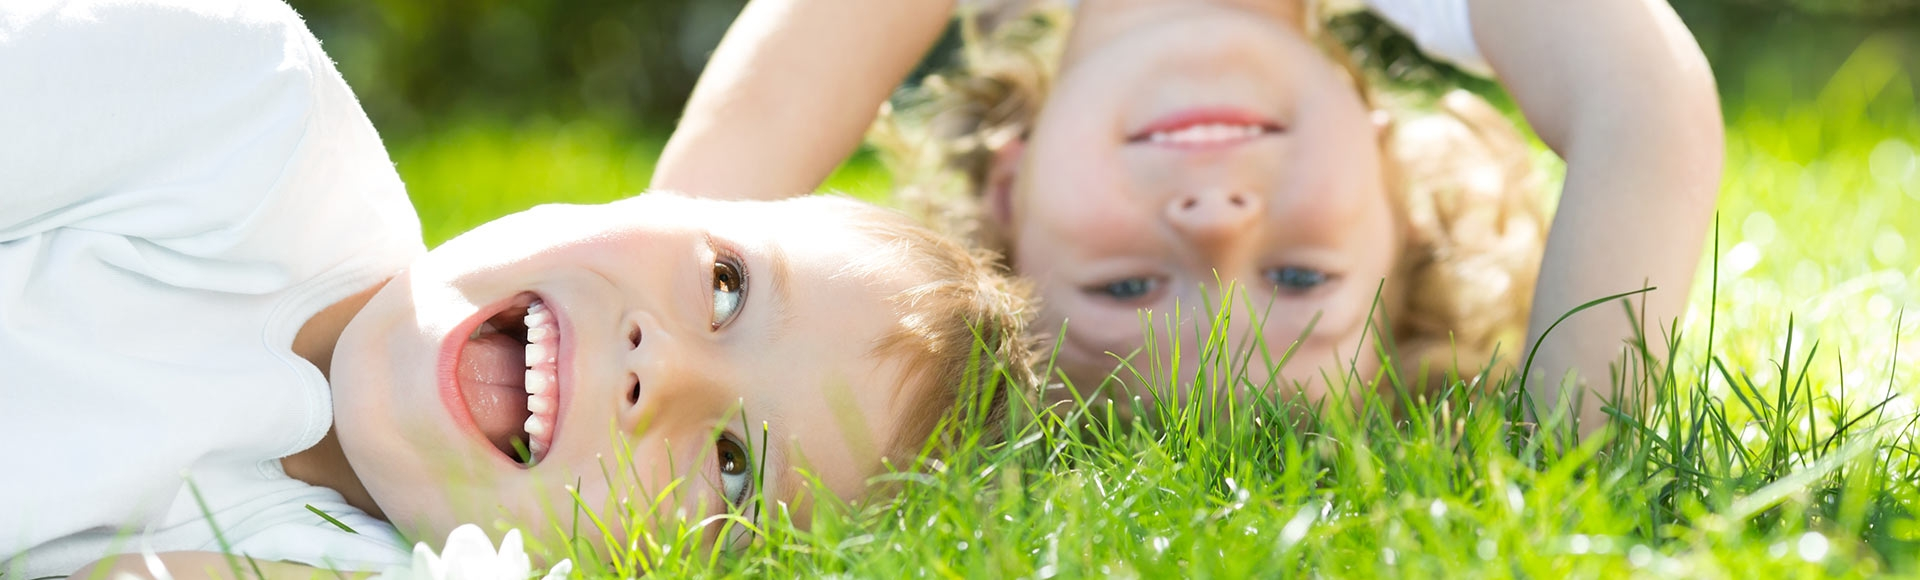 young children playing in grass